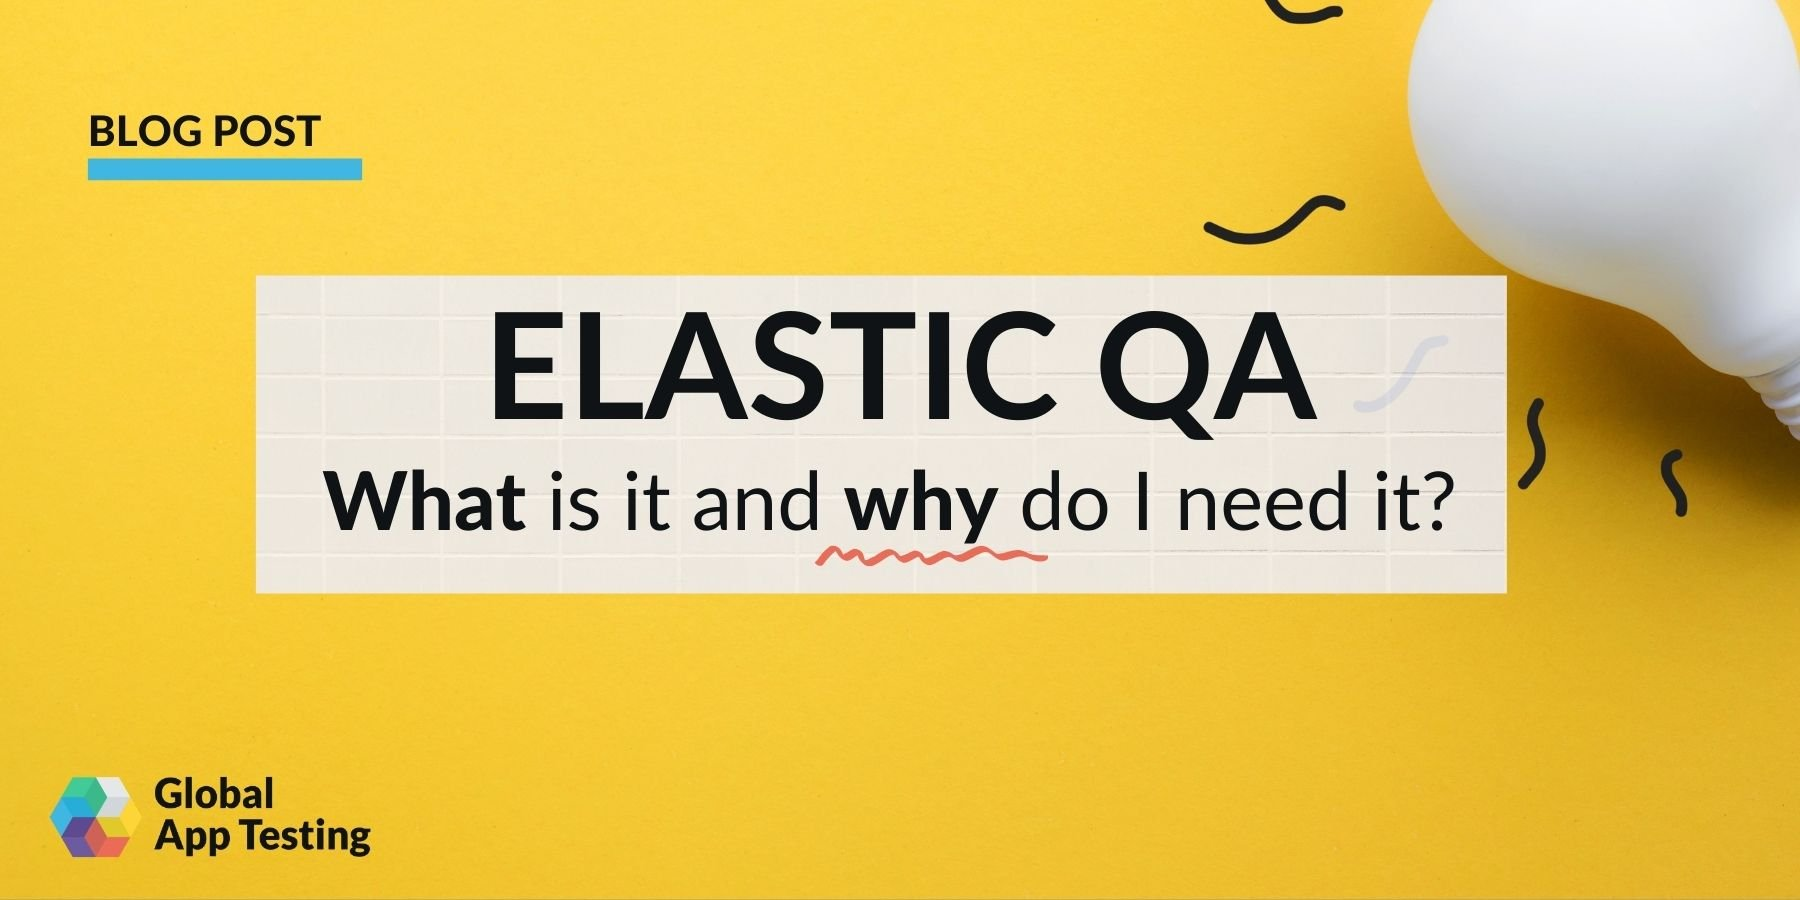 Elastic QA: What is it and why do you need it?